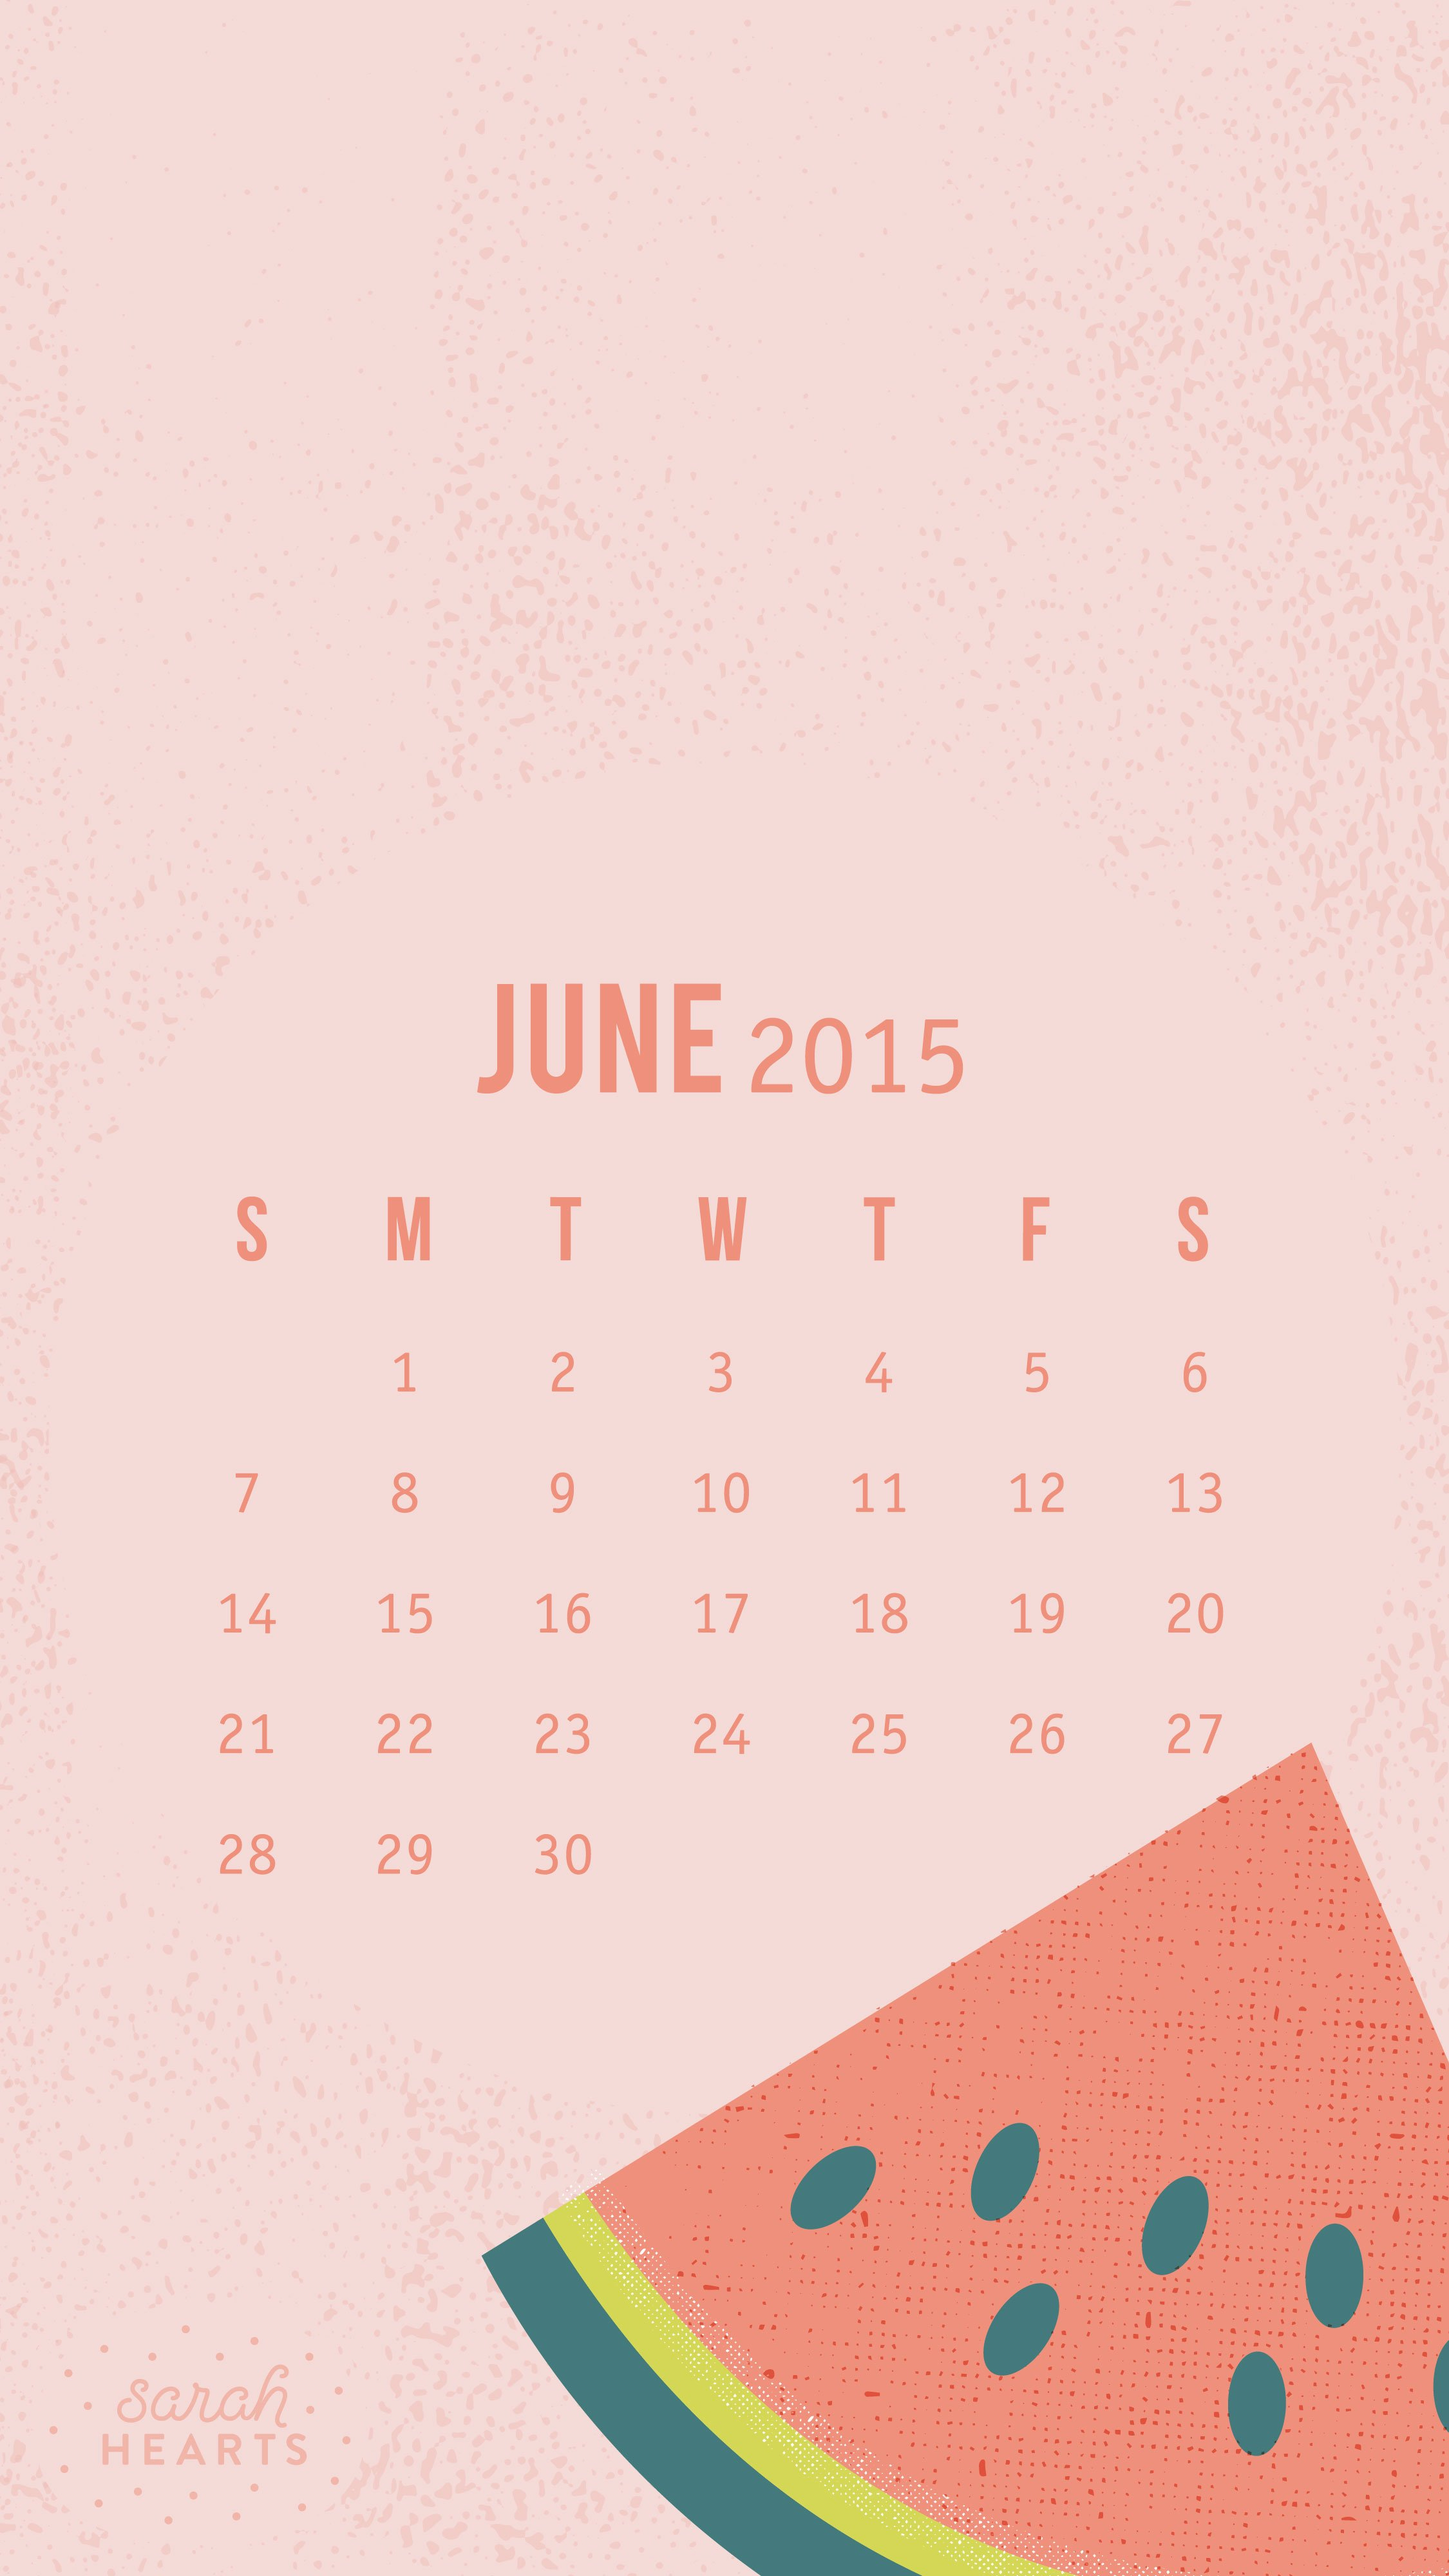 June 2015 Calendar Wallpaper   Sarah Hearts 2250x4000